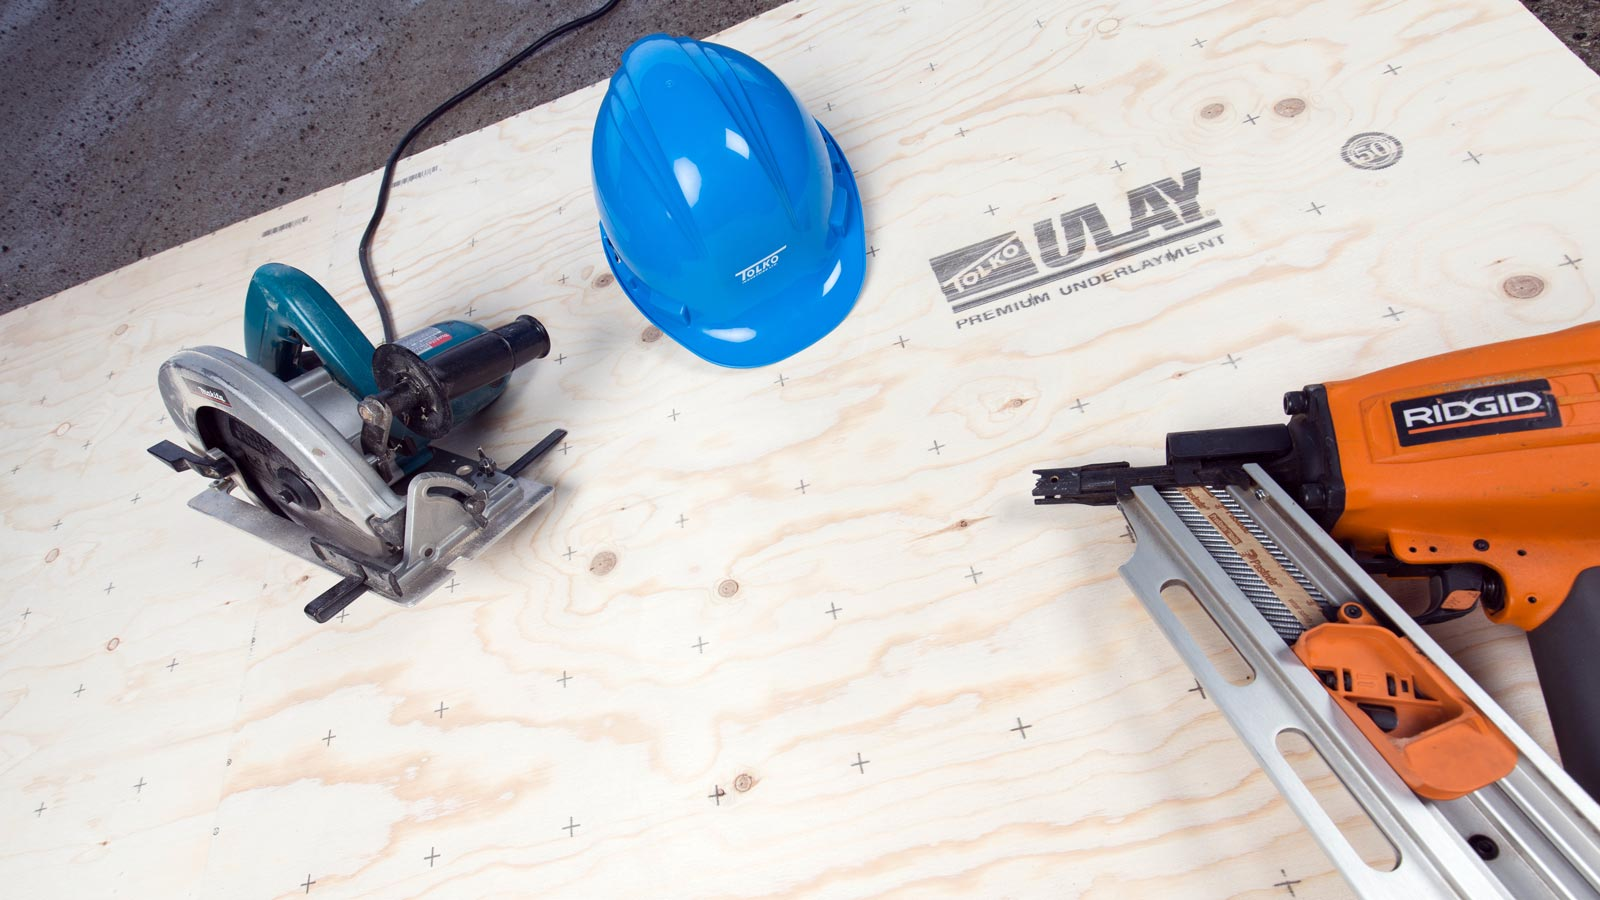 Tolko U-Lay product with skillsaw, hardhat and nail gun